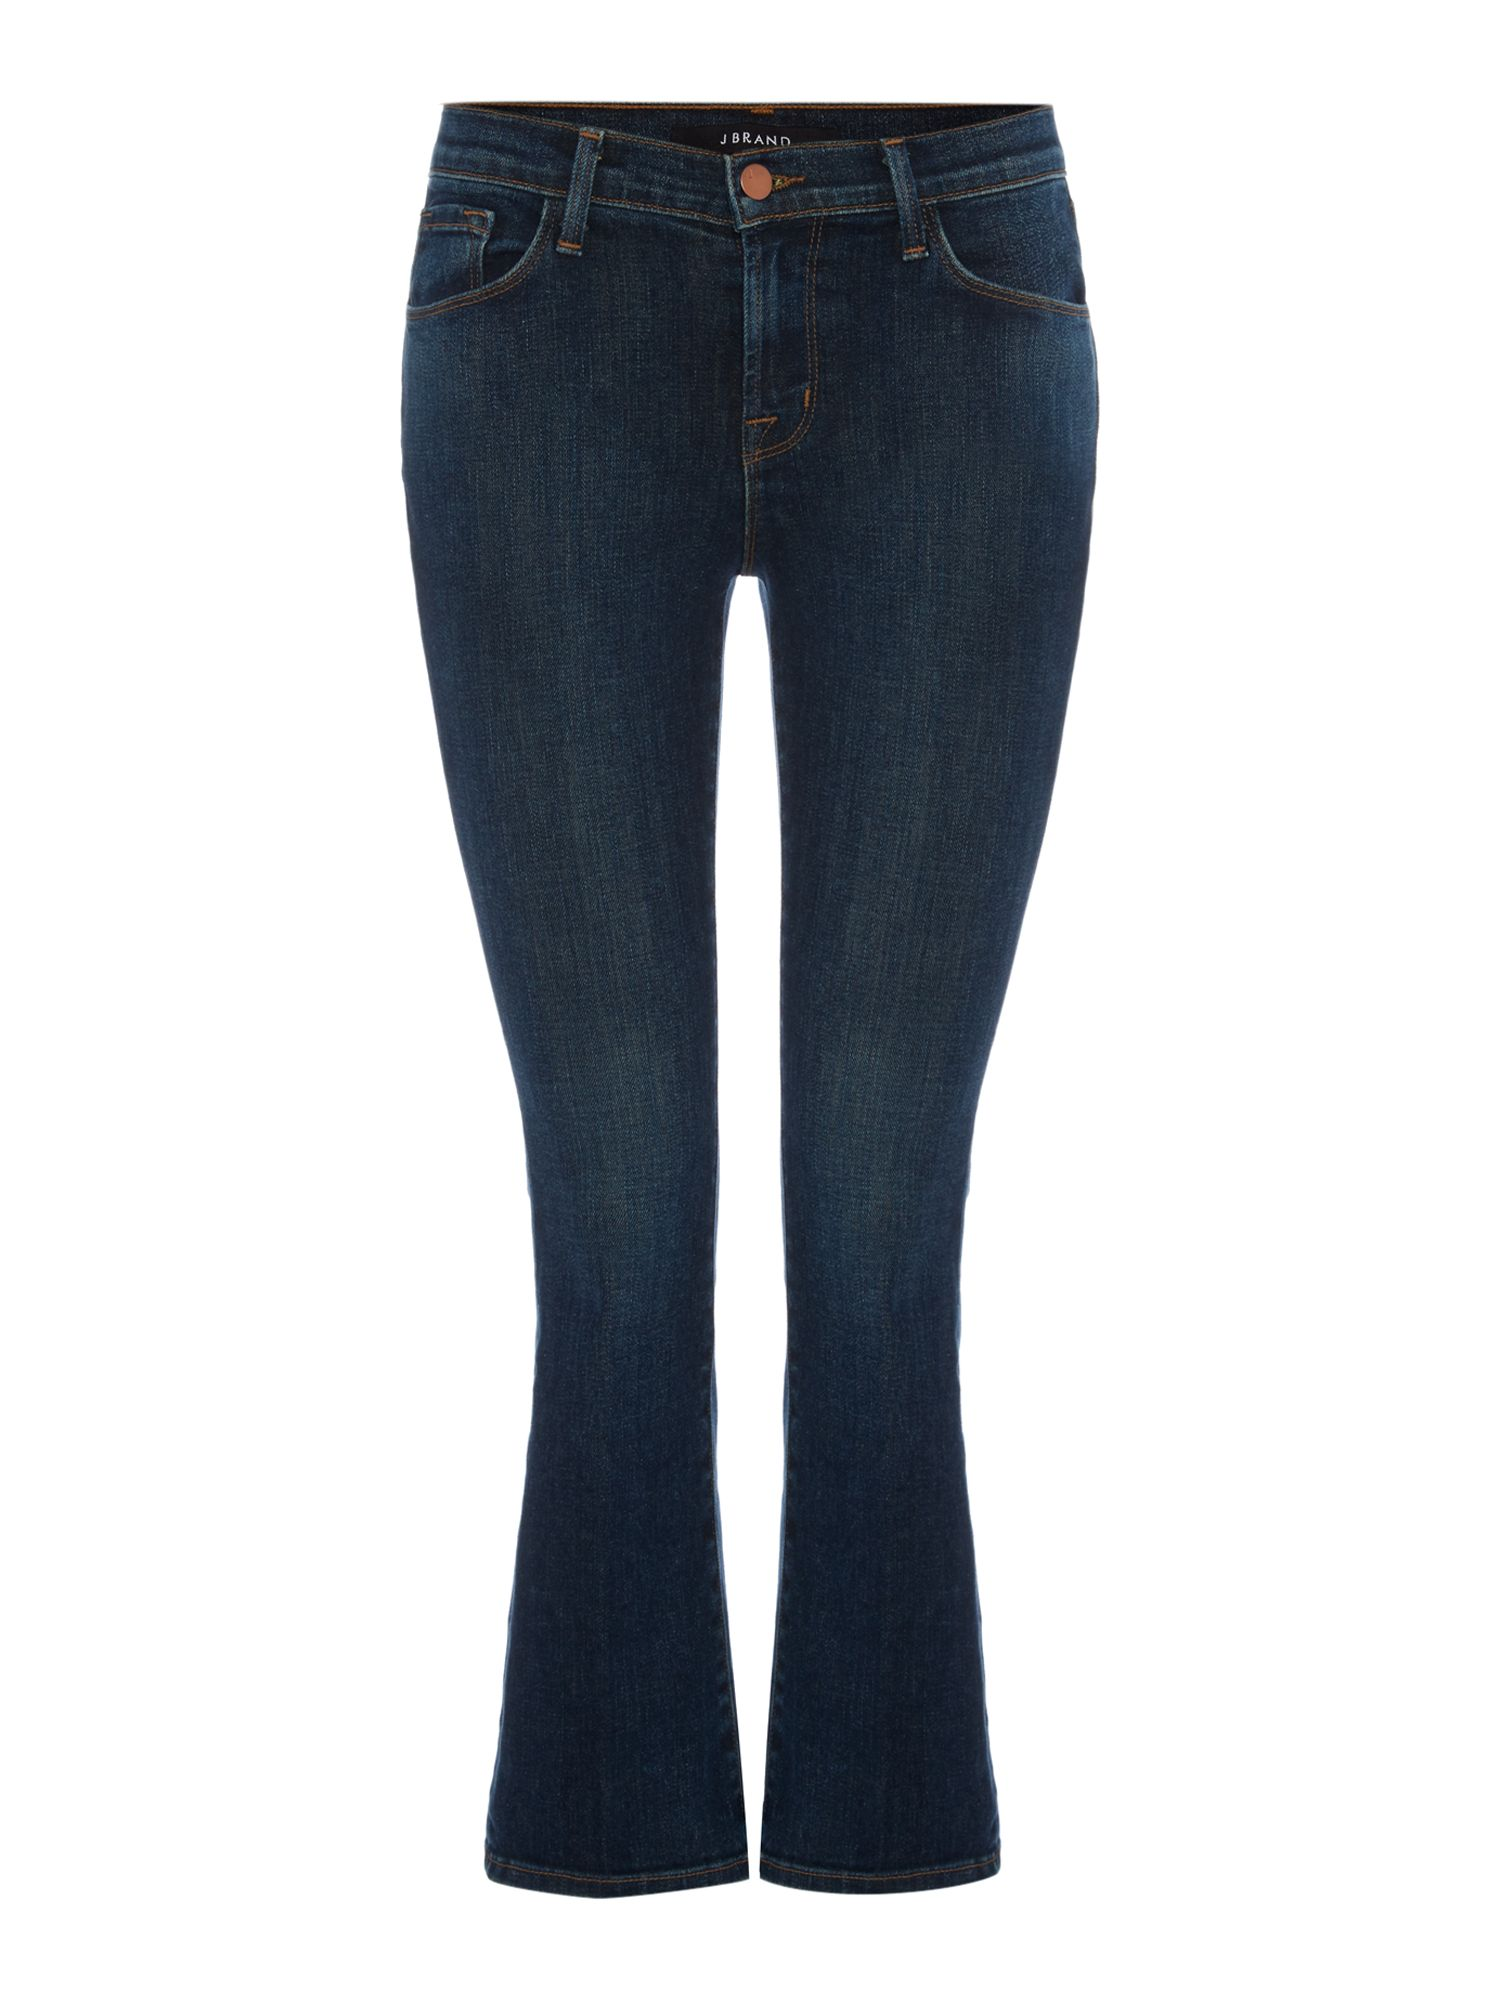 J Brand J Brand Selena mid rise cropped bootcut jean in lonesome, Denim Mid Wash